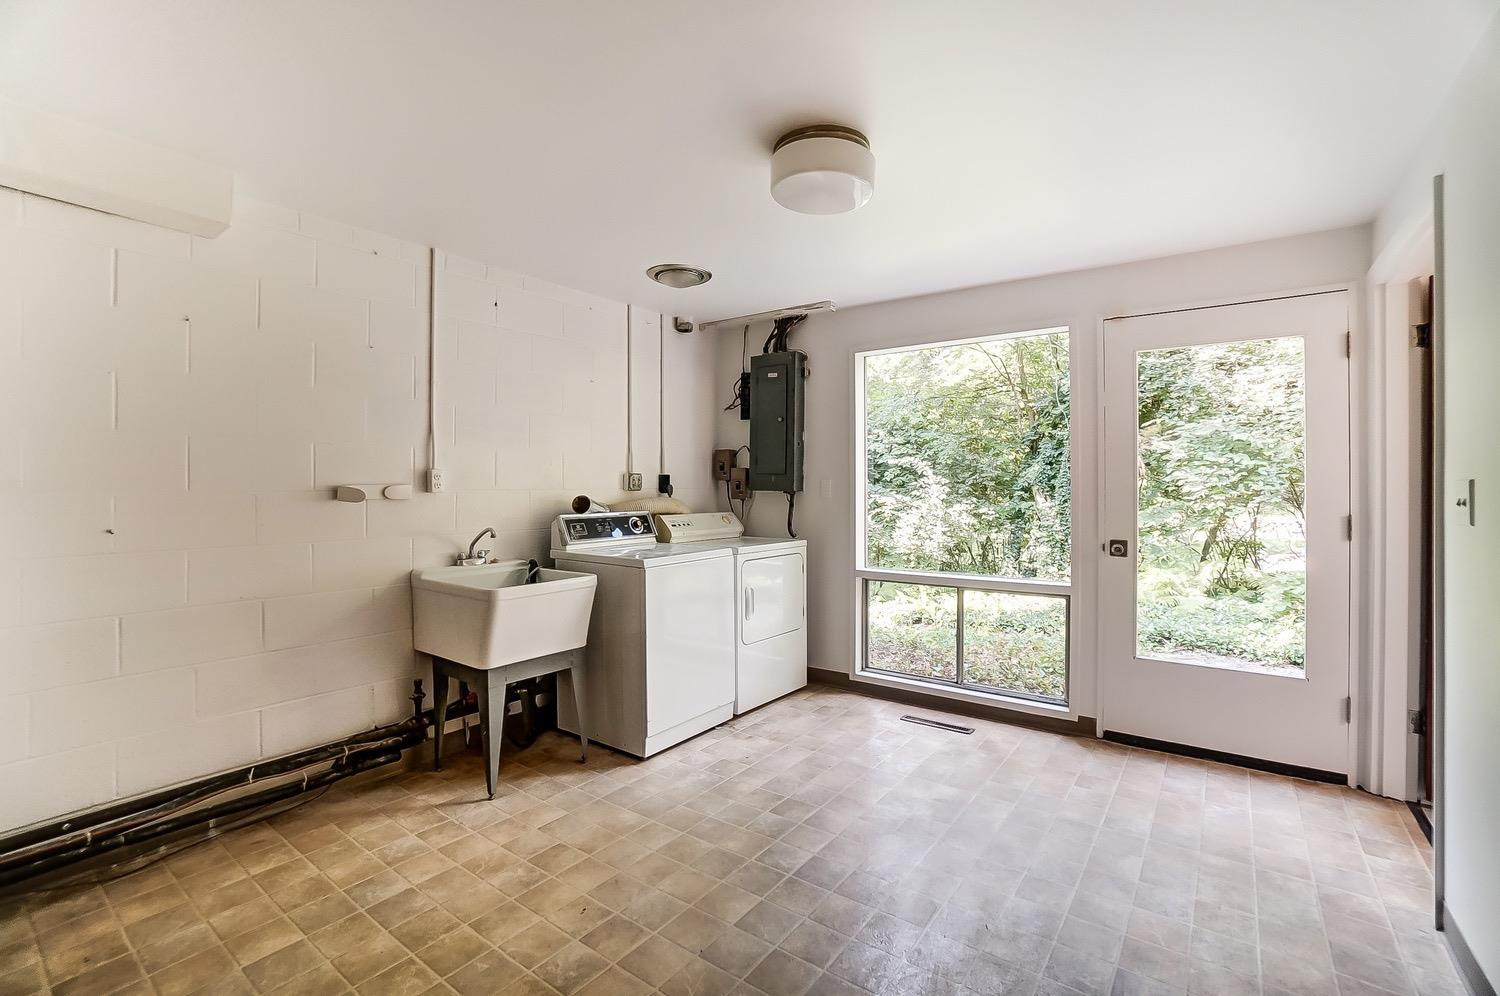 An expansive laundry room with side entry allows for easy access the home's 5th bedroom and full bath.